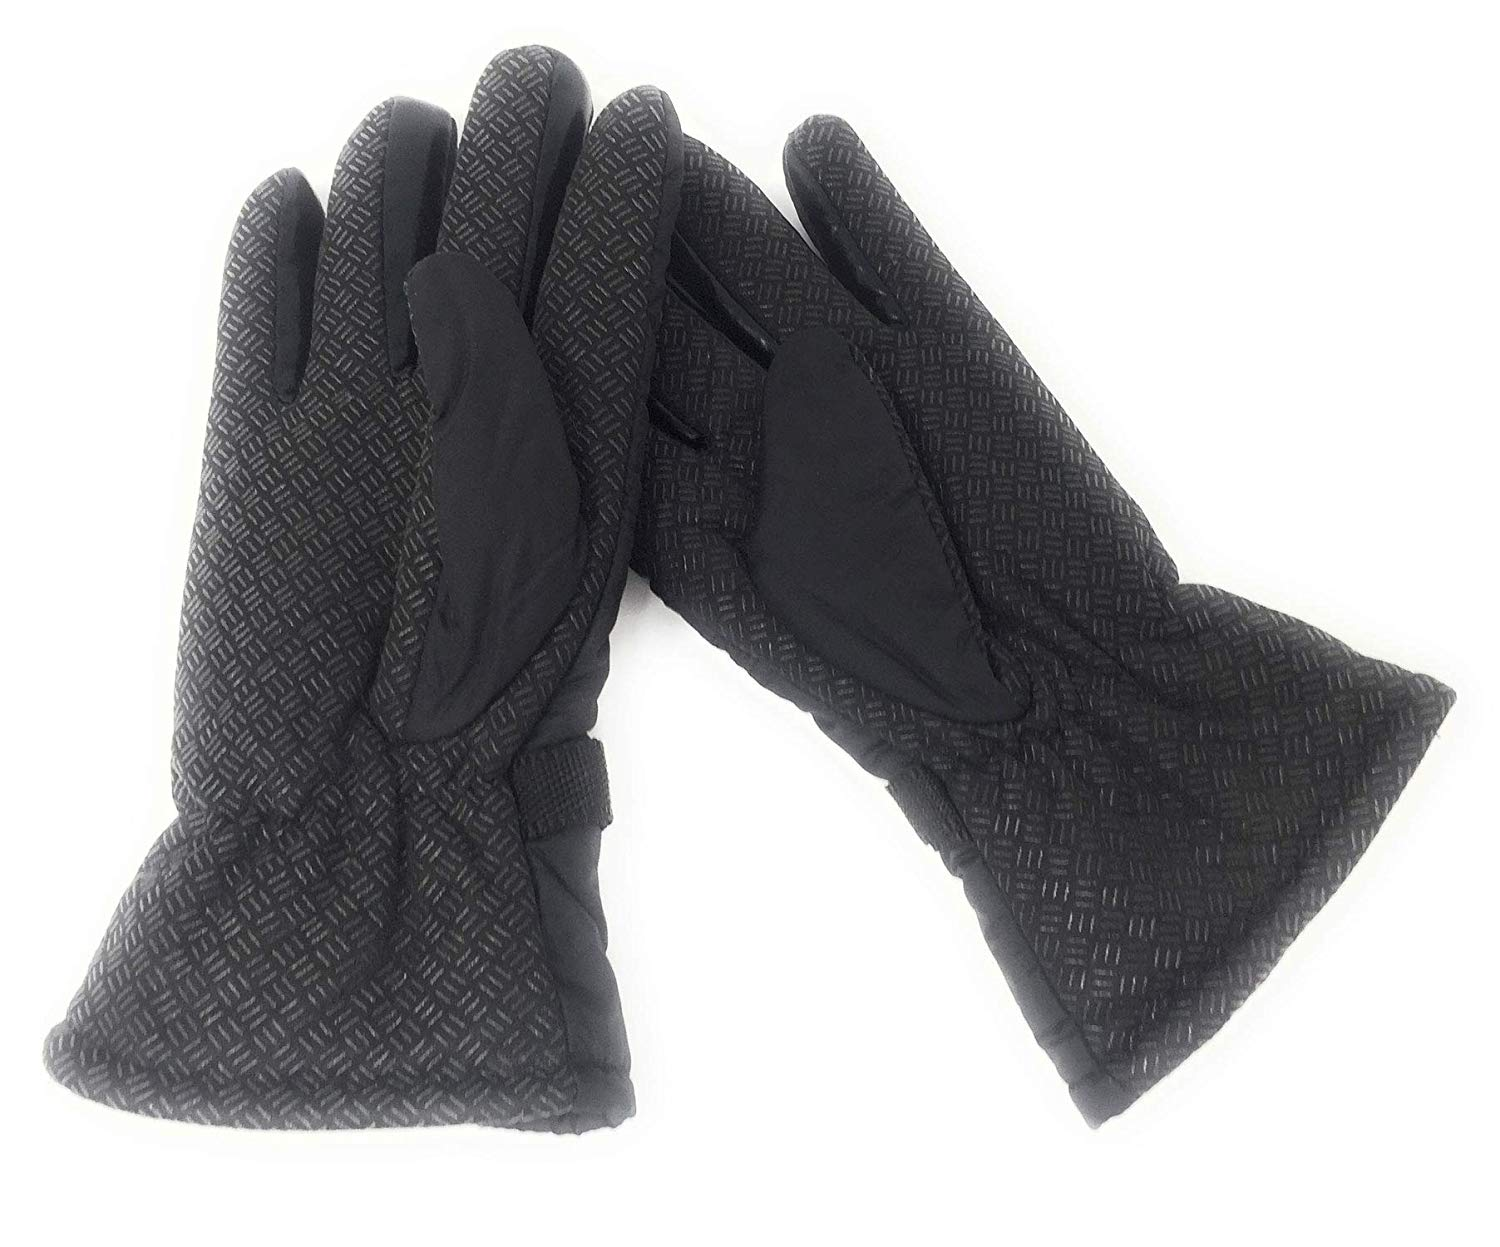 Thermal Warm Winter Gloves for Men – Insulated Cold Weather Gloves for up to -20 F